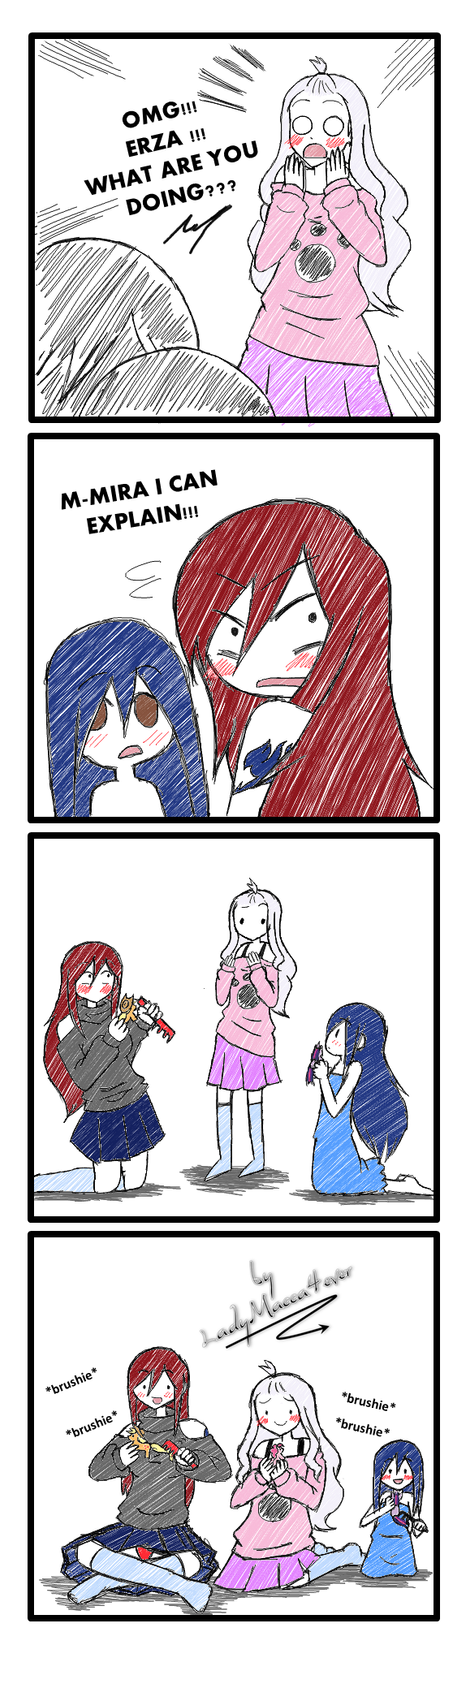 Omg erza what are you doing by edoroku on deviantart